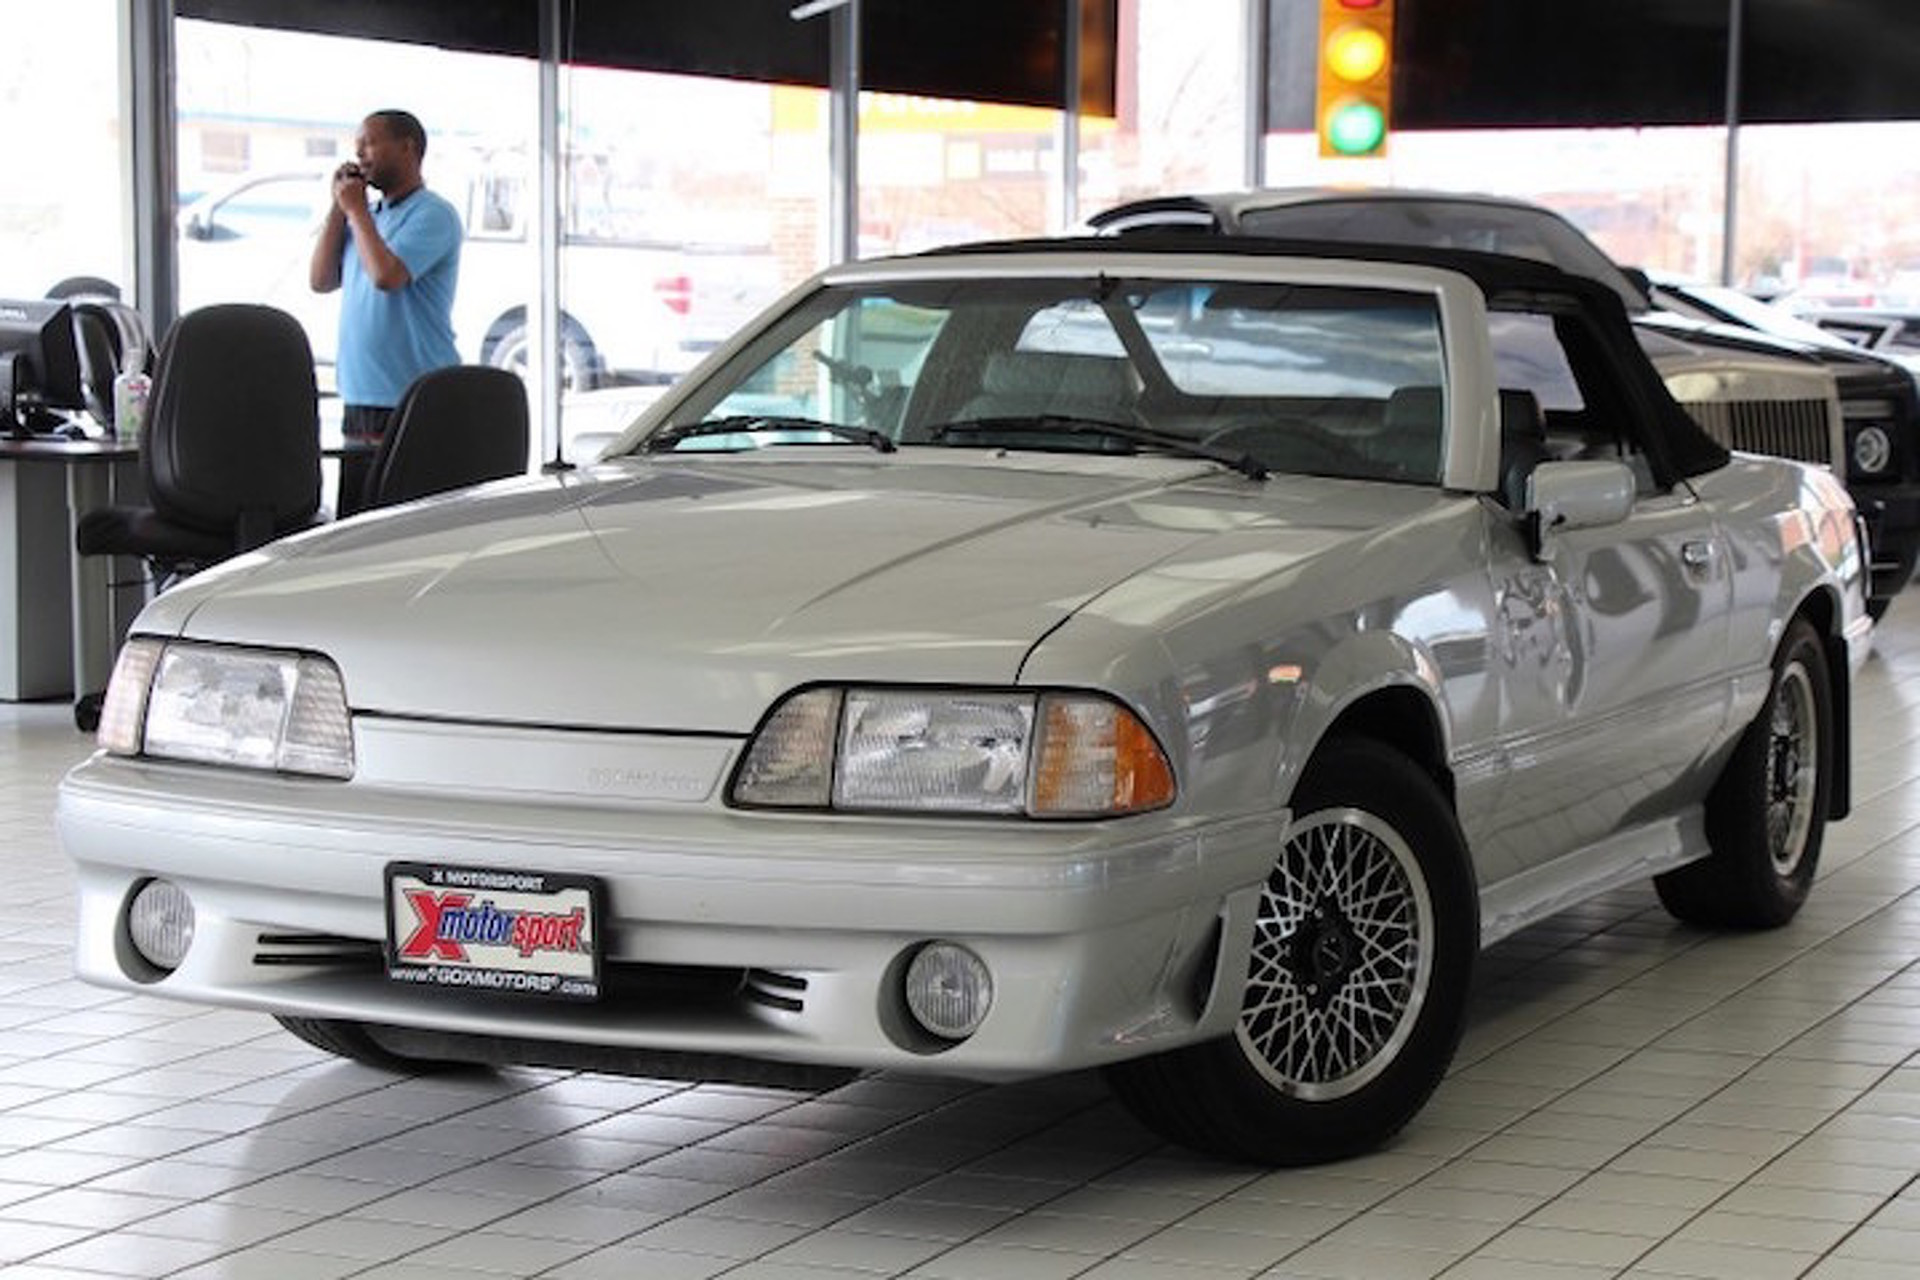 Rare Ford Mustang ASC McLaren Has the Spirit of the '80s